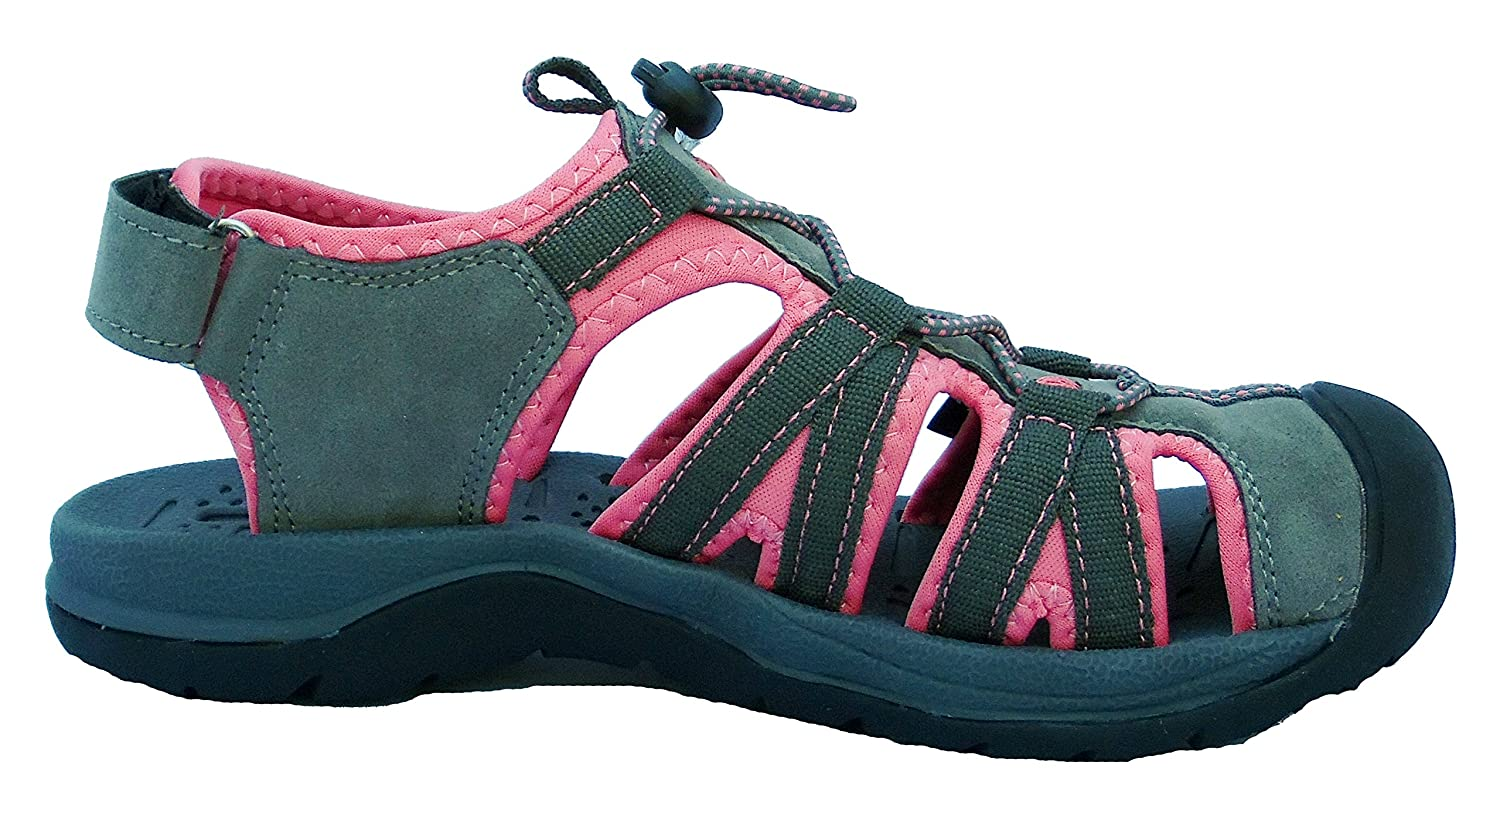 Northwest Territory, Sandali donna, Multicolore (Pink/Teal), 6